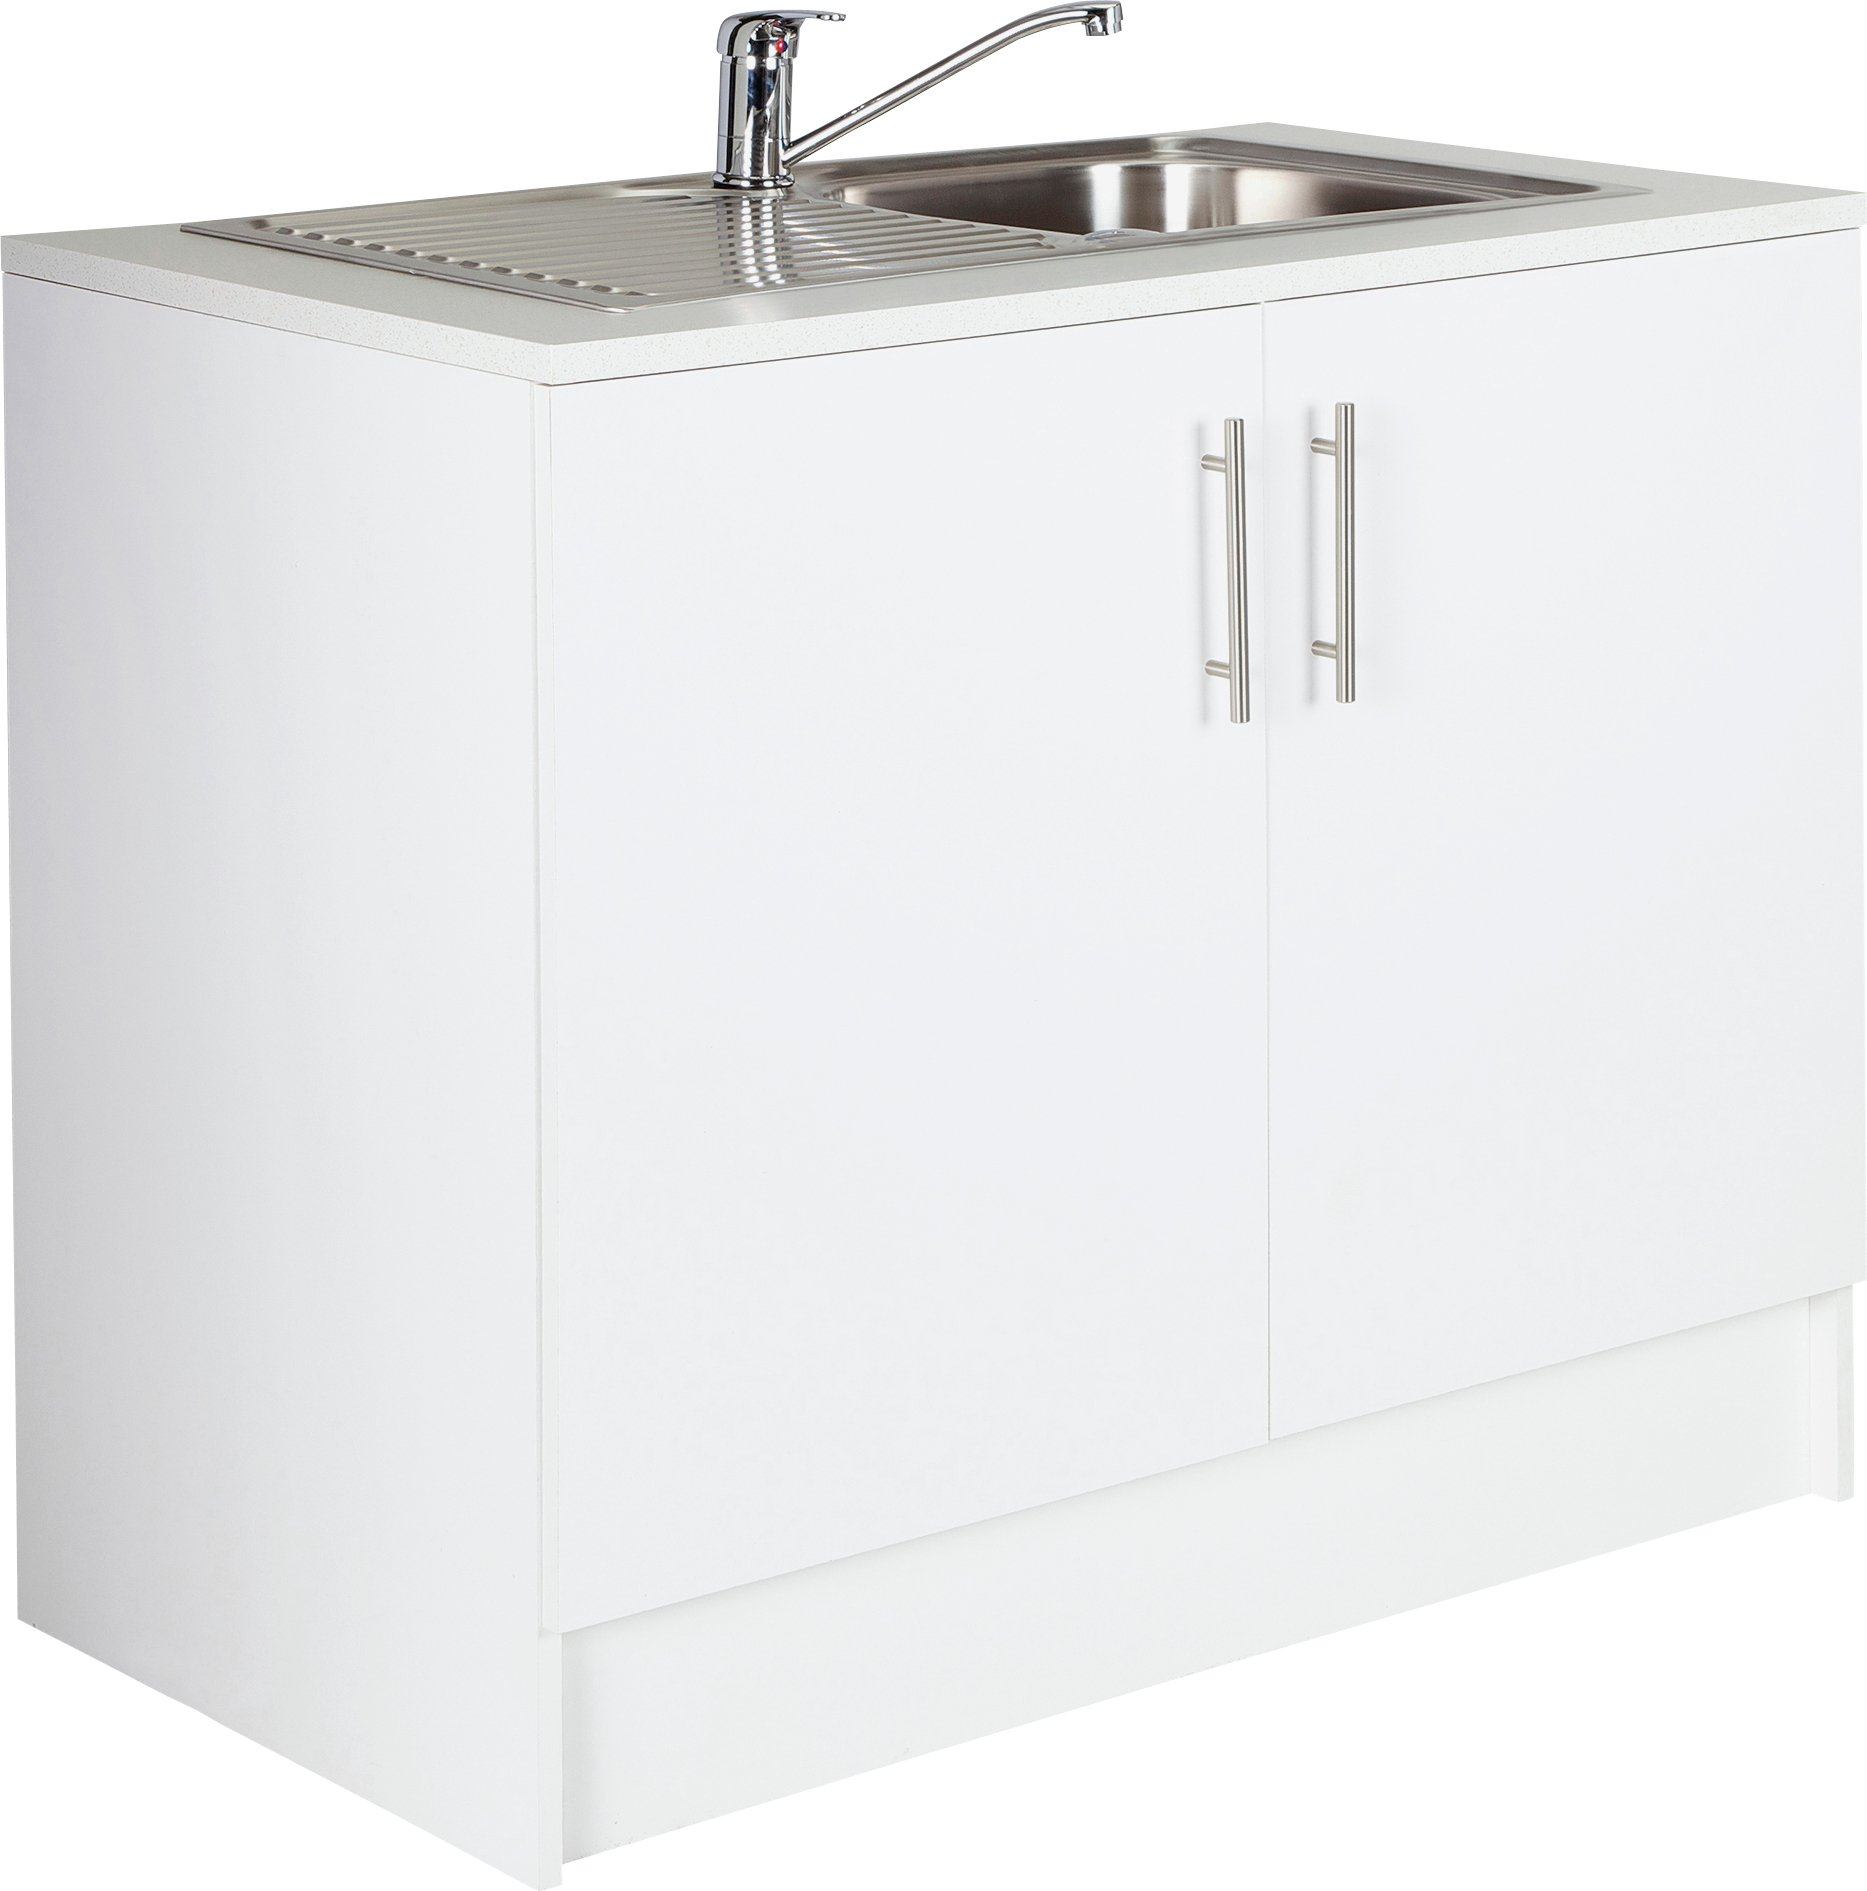 Kitchen Sink Units: Kitchen Units Available From Paintedkitchens.co.uk